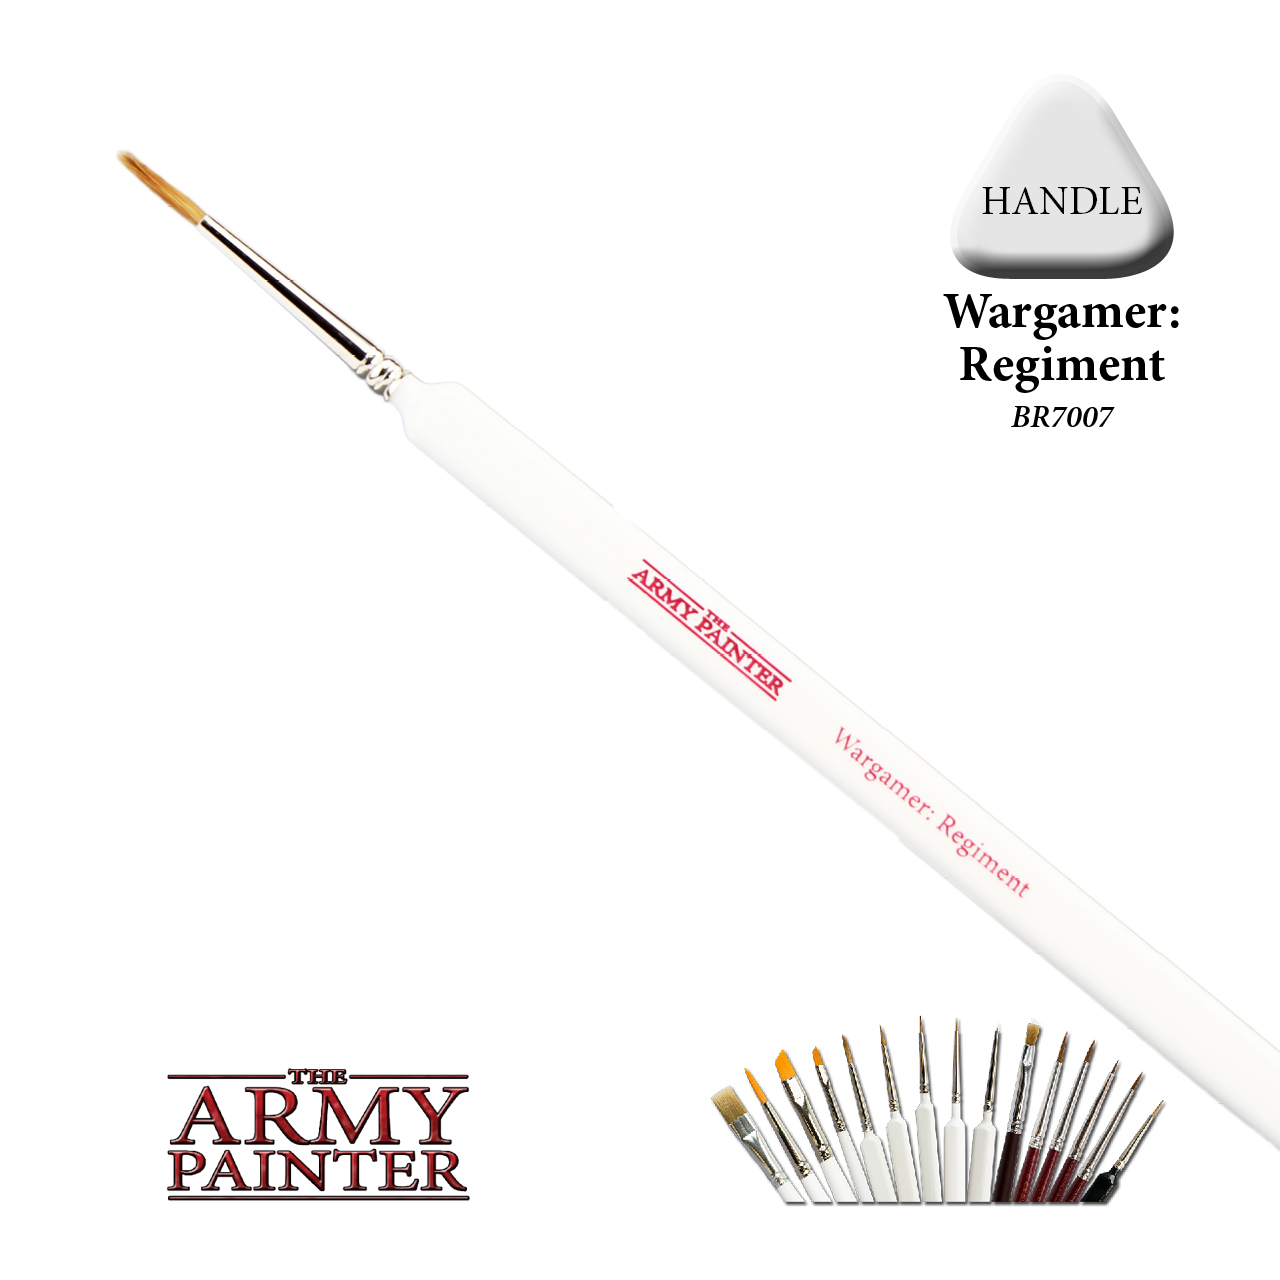 Army Painter Regiment Brush image